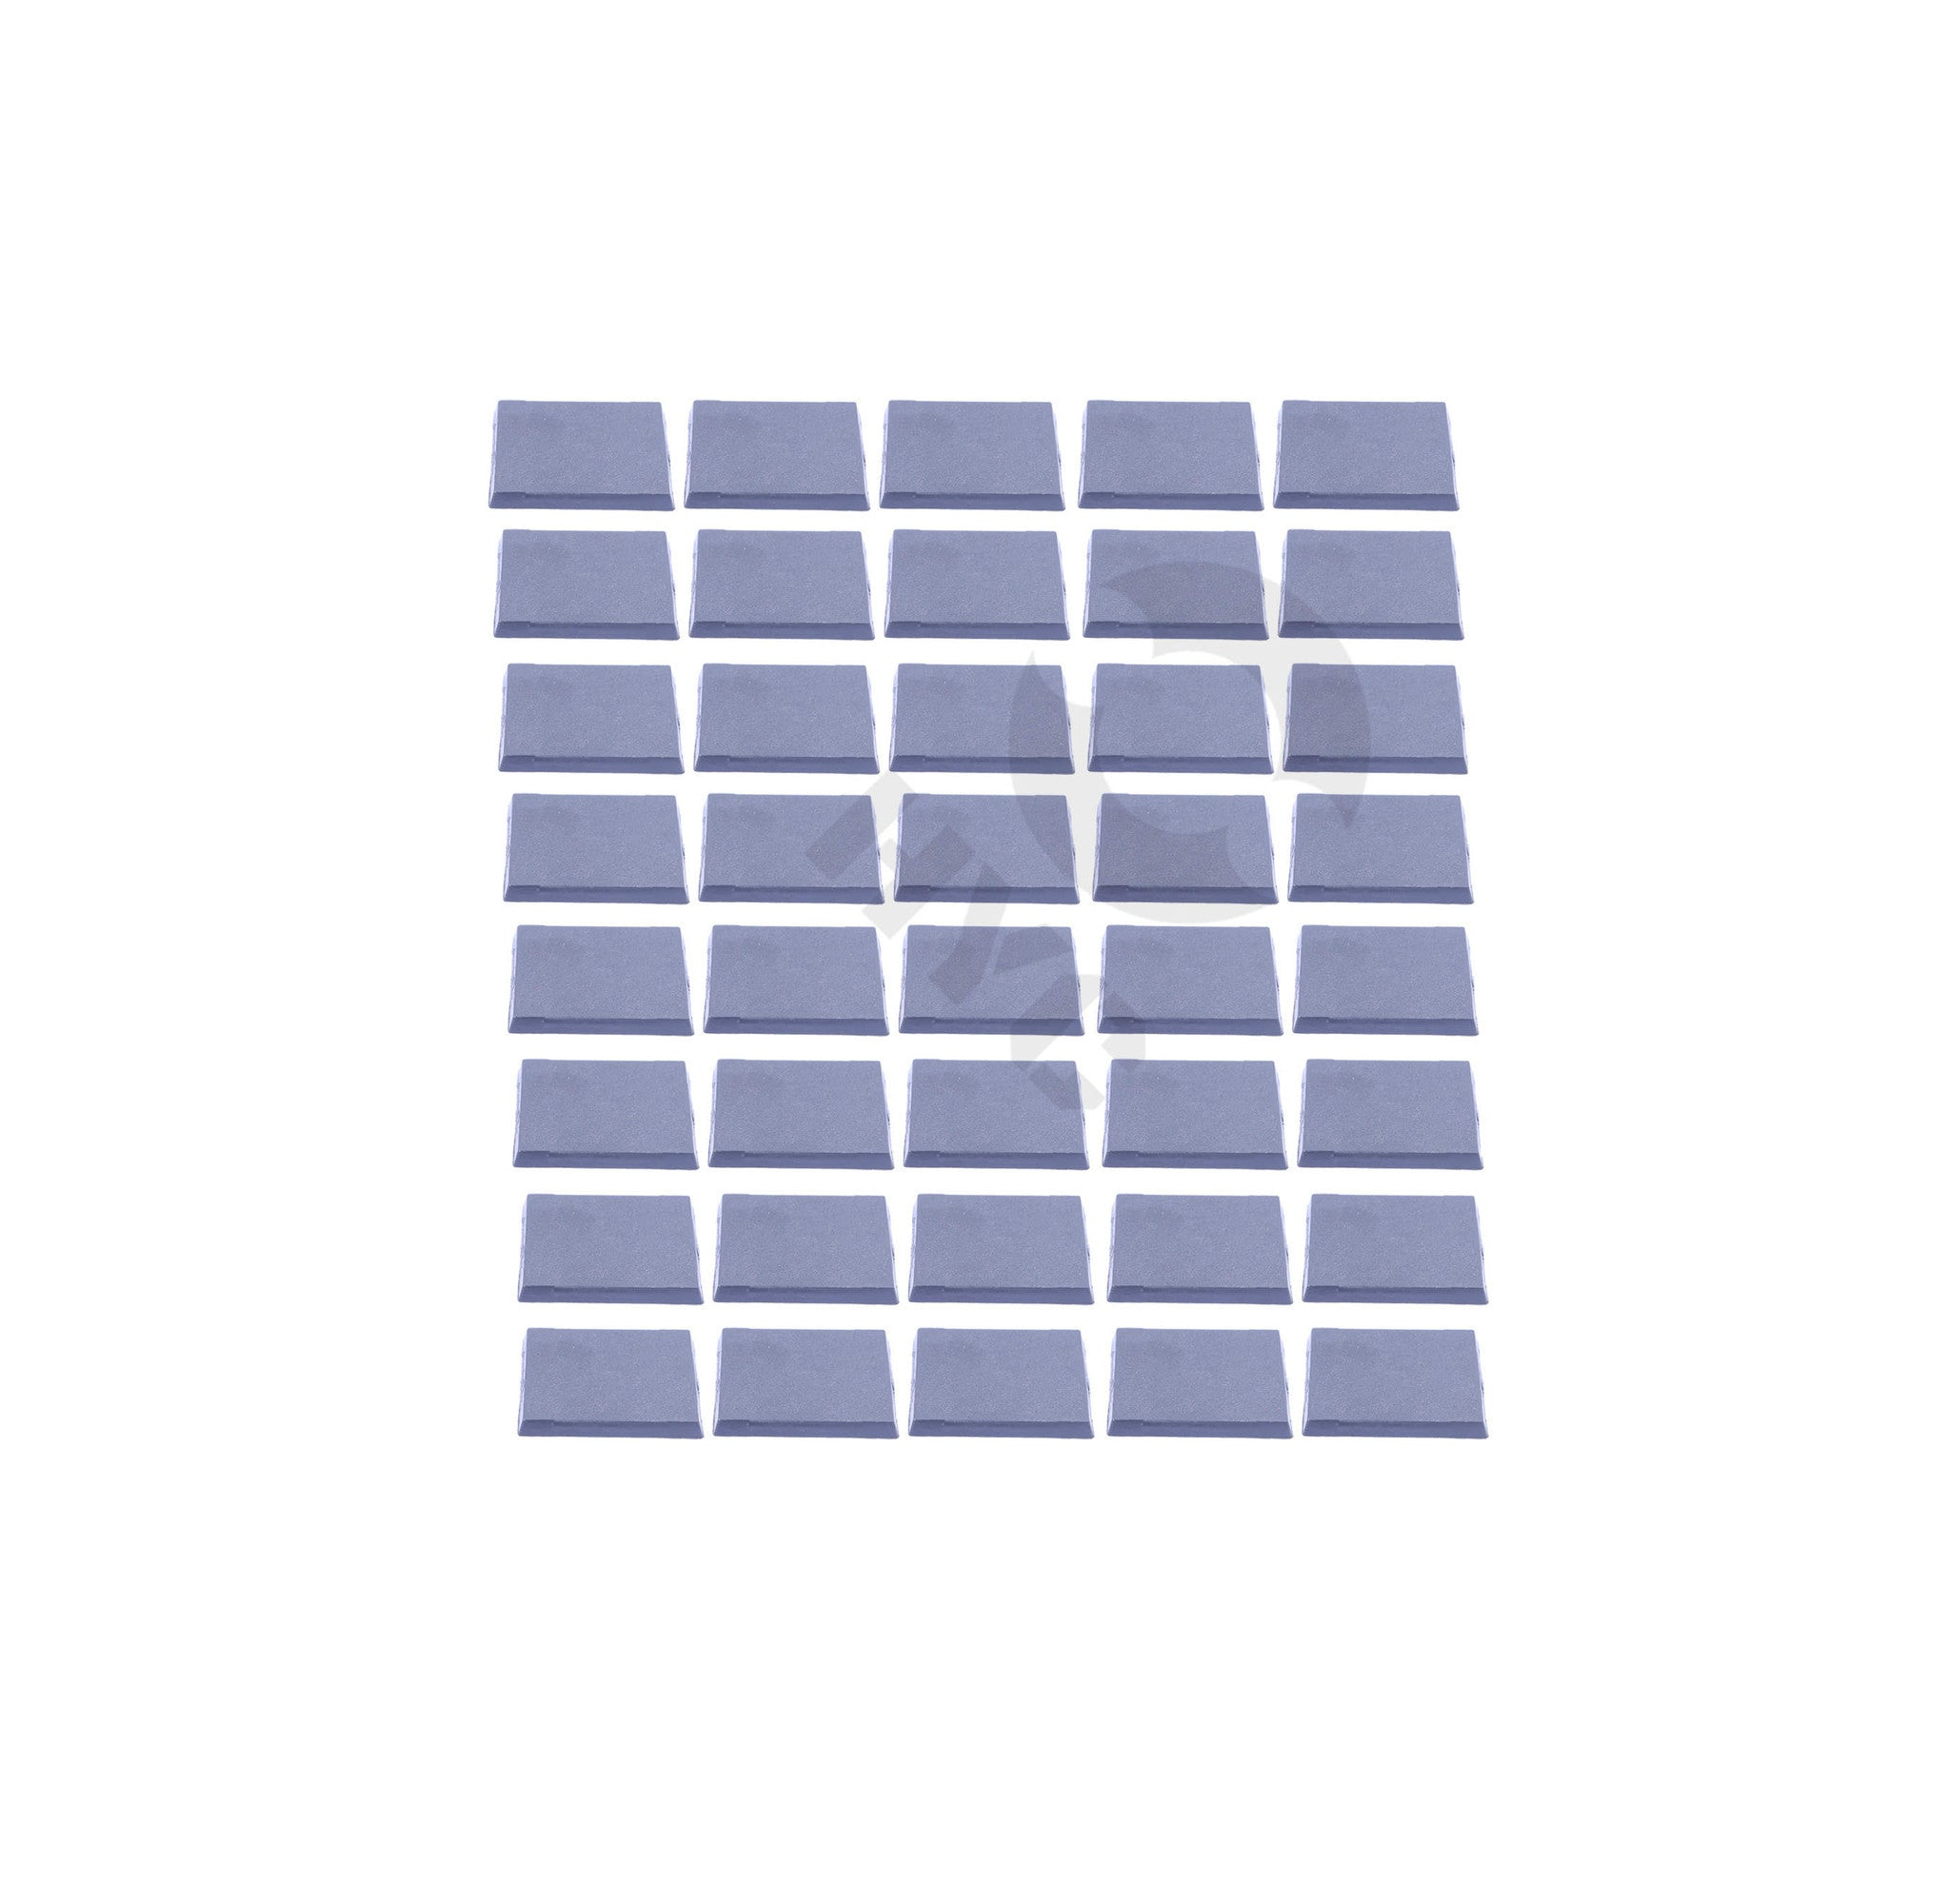 Lot of 40 40mm square bases - WargameBase Store